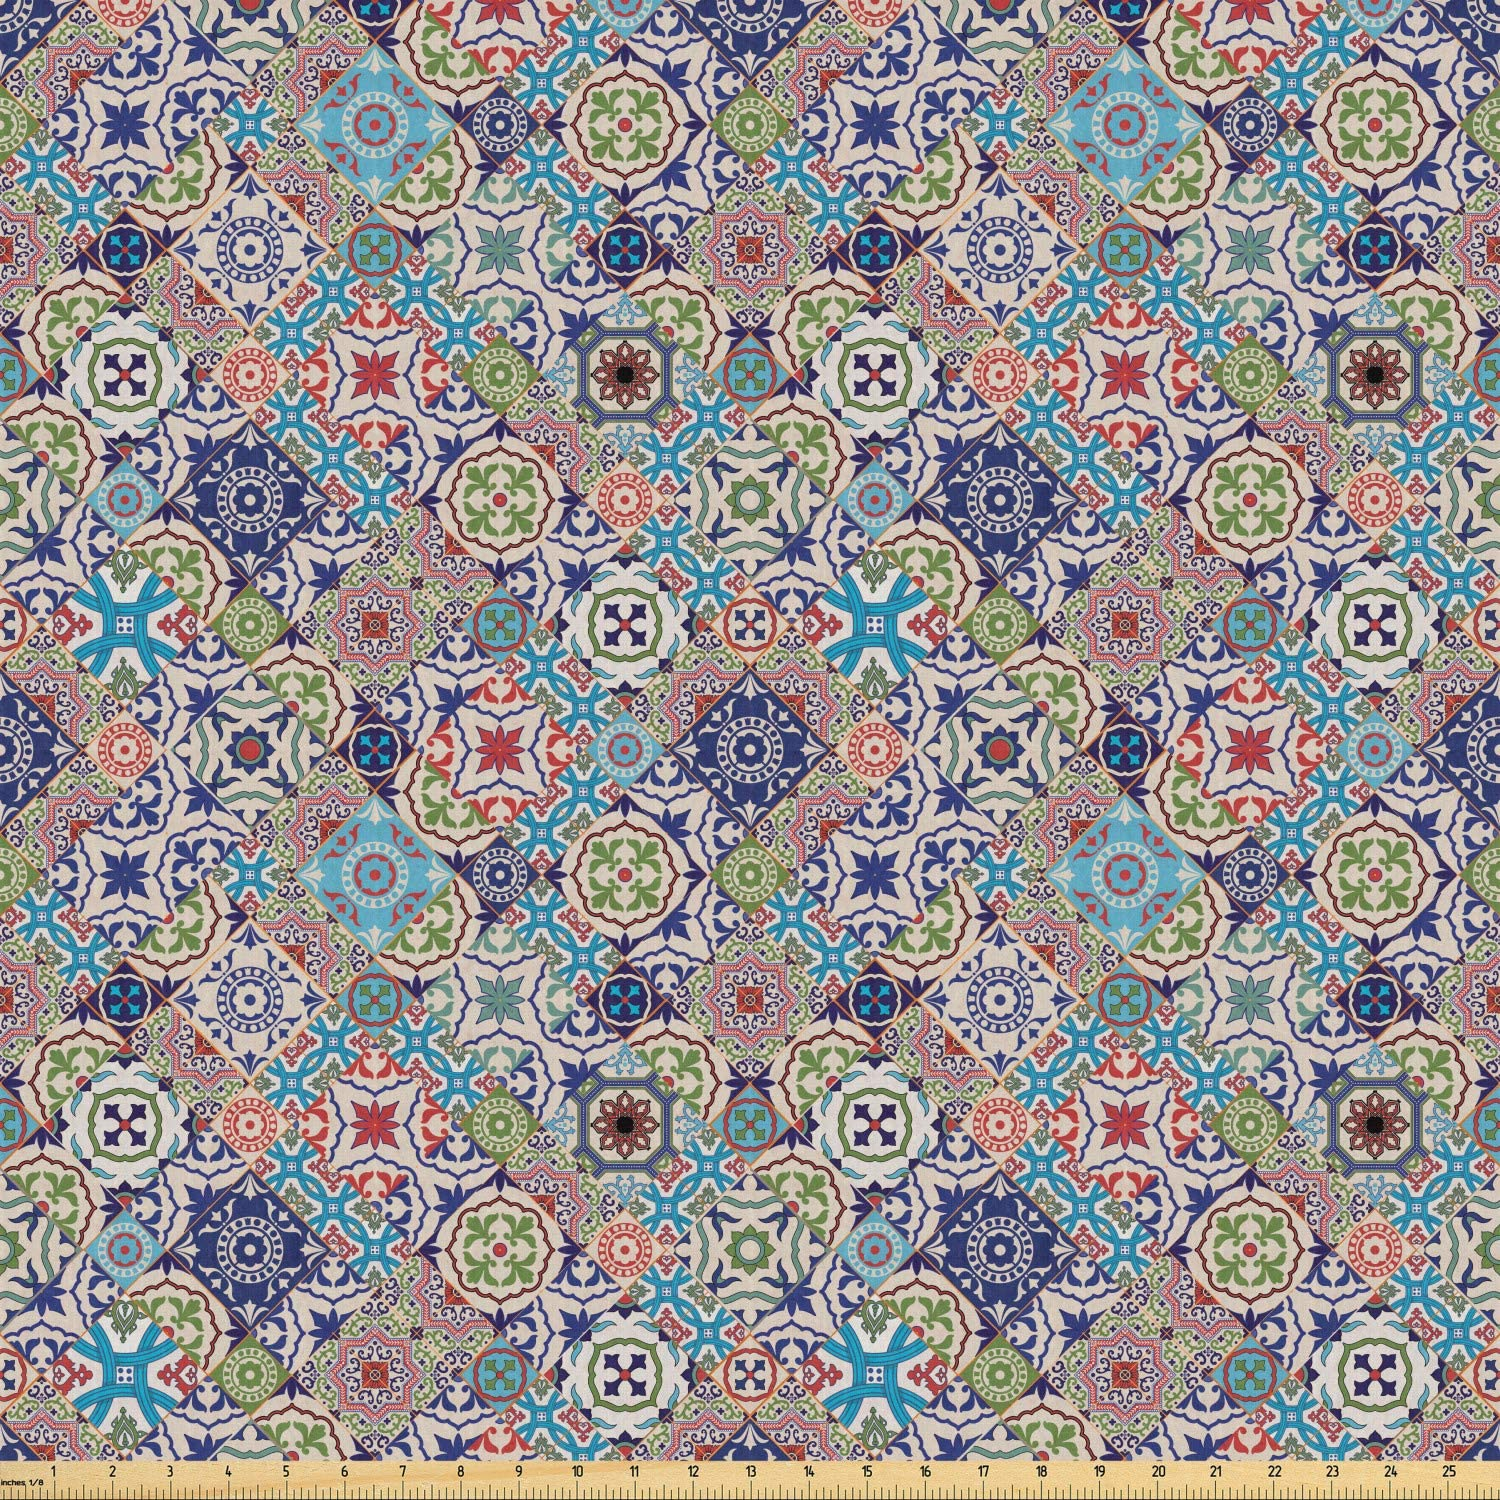 Ambesonne Moroccan Fabric by The Yard, Complex Colorful Moroccan Tile Motifs Antique Floral Ornaments Design, Stretch Knit Fabric for Clothing Sewing and Arts Crafts, 10 Yards, Multicolor